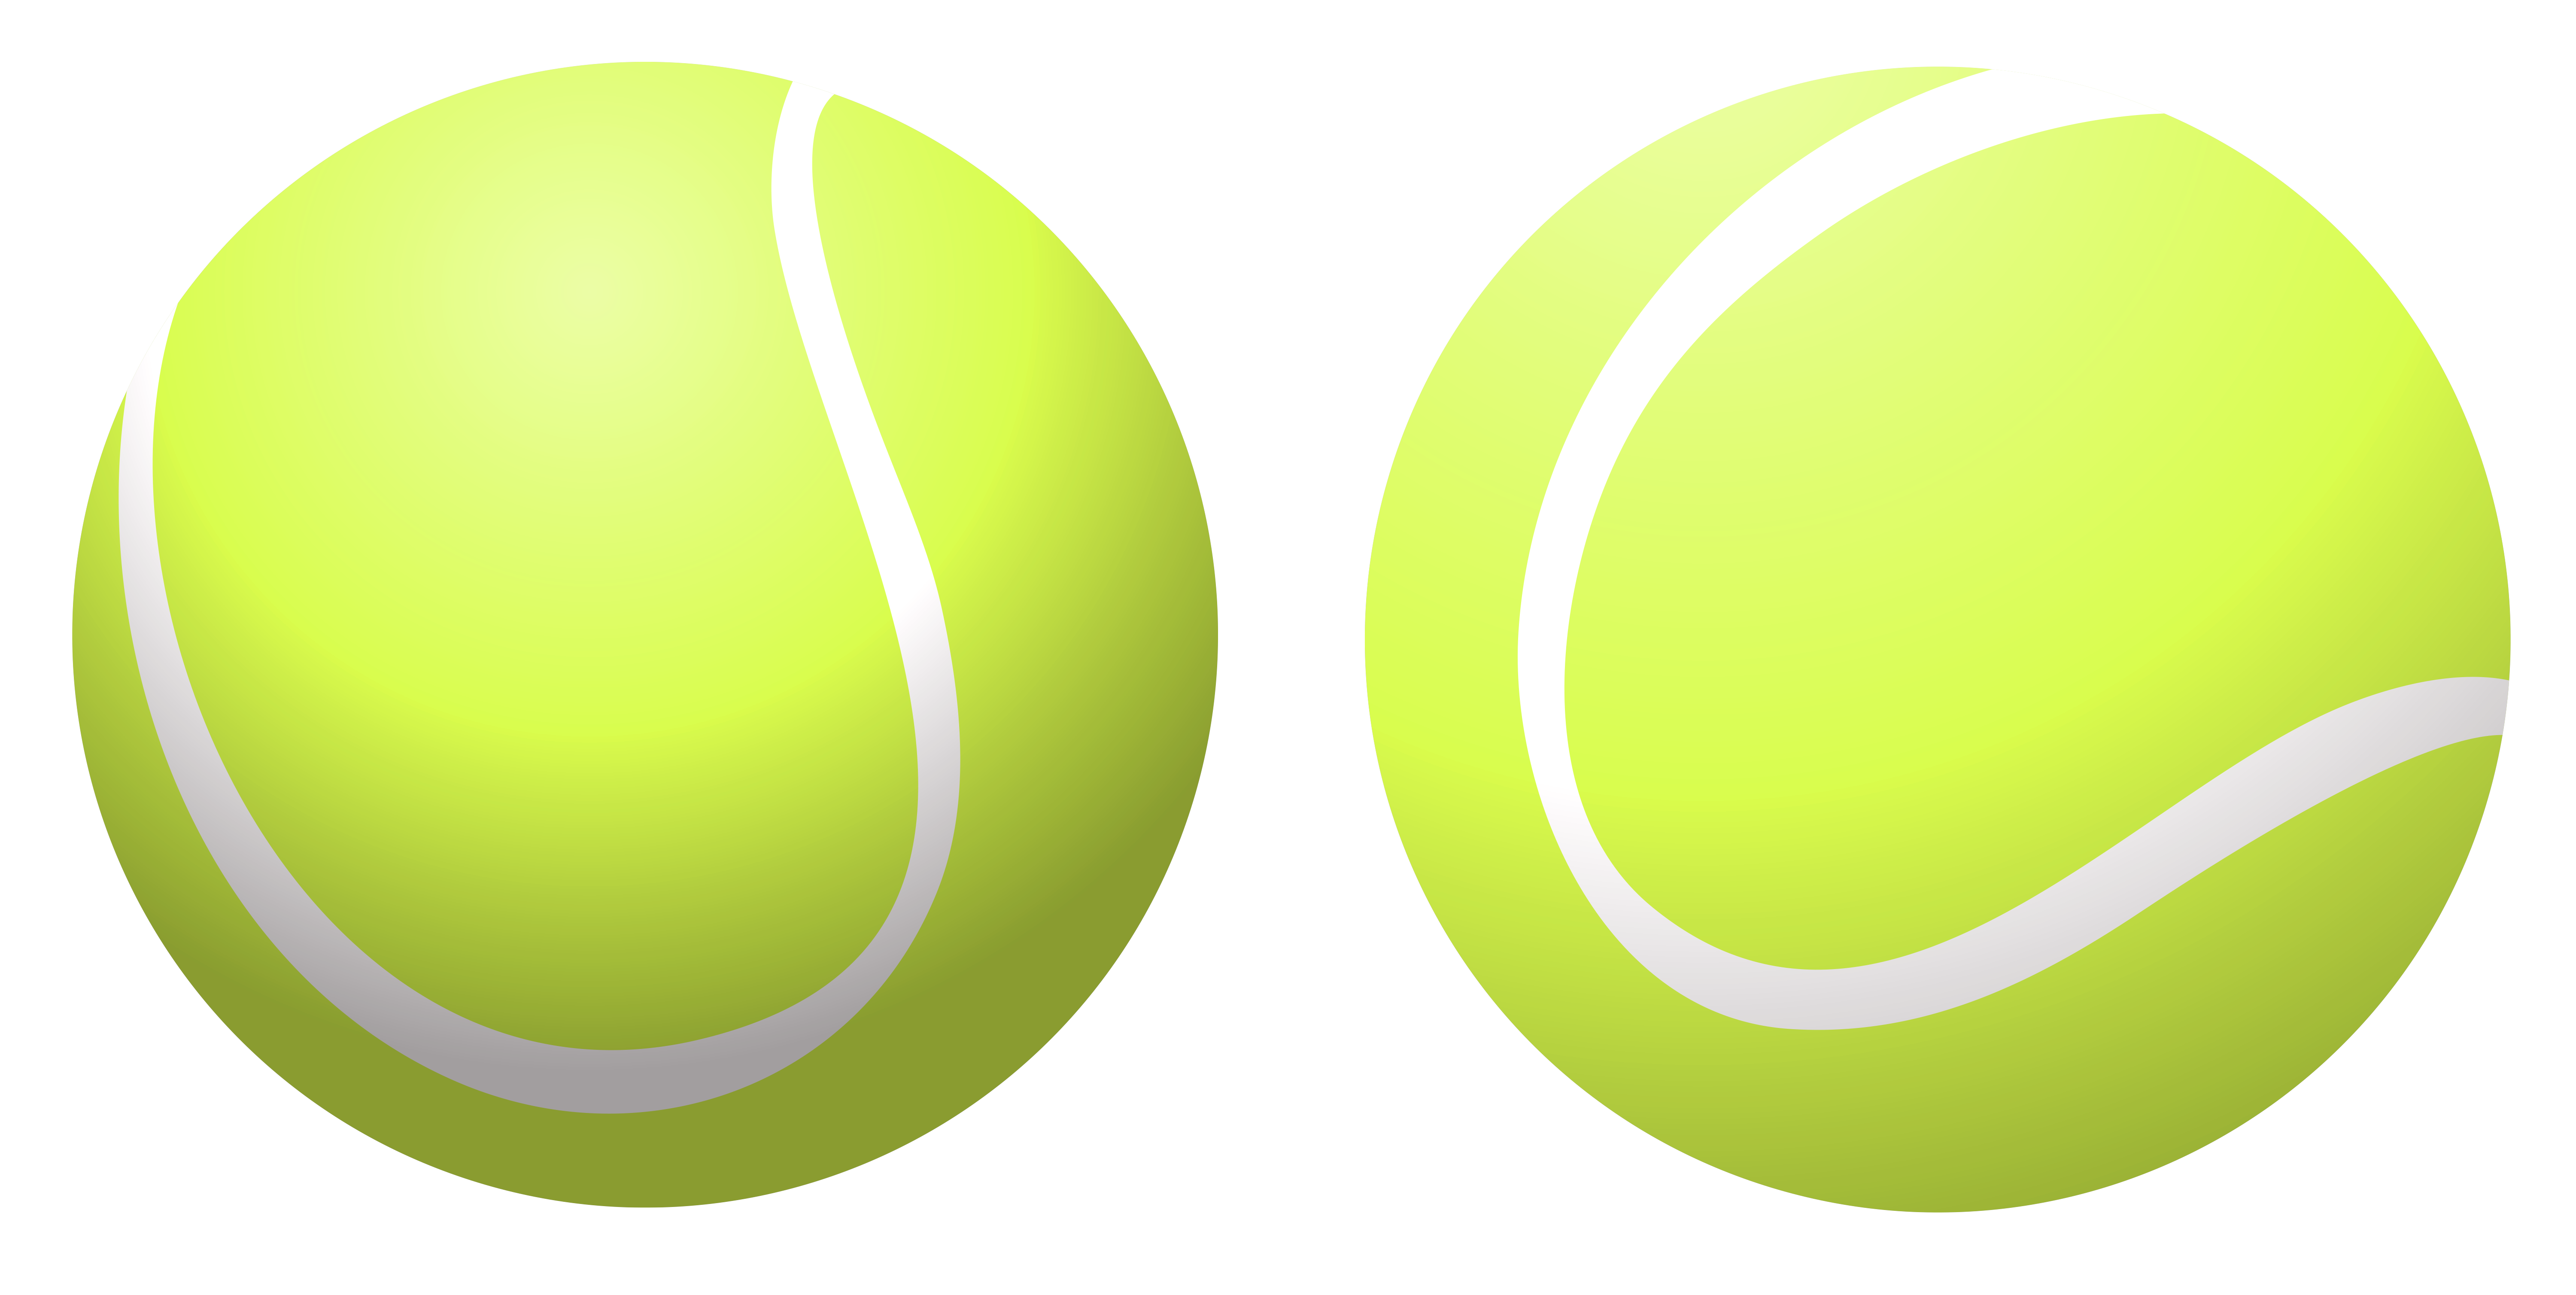 image library download Ball png pictur gallery. Tennis balls clipart